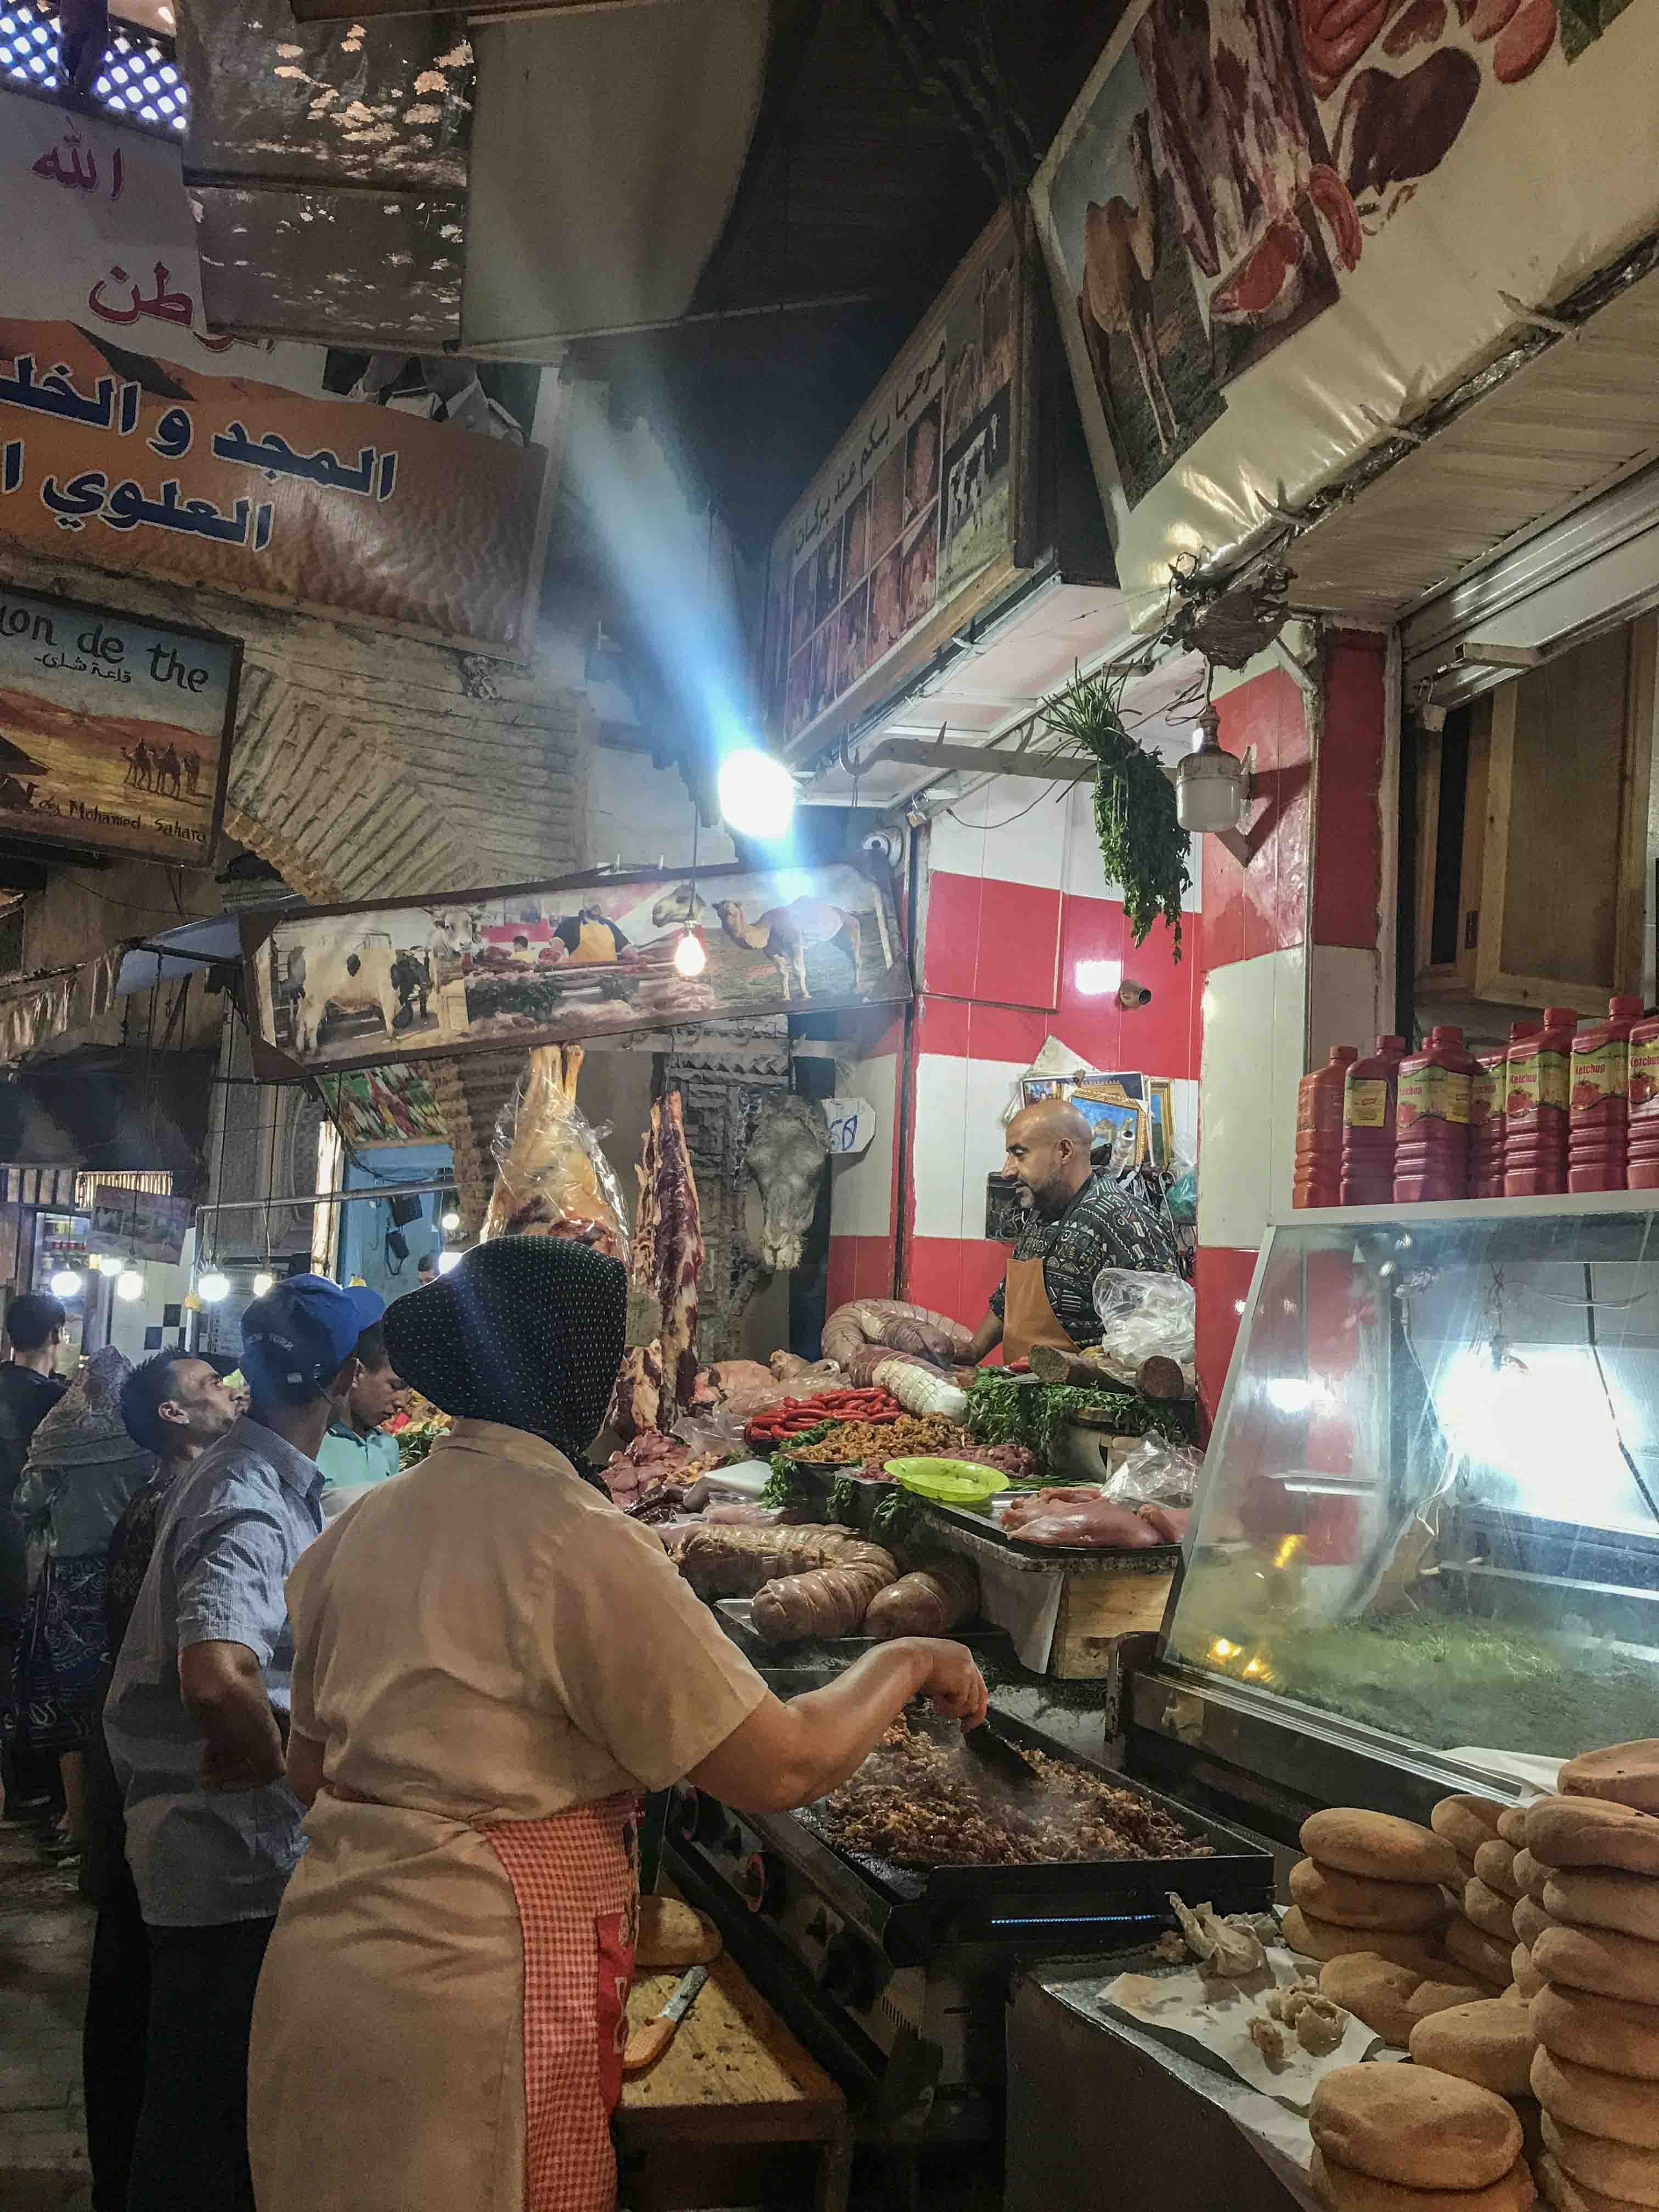 View on one street within the medina - the stand to the right sells camel meat and even has a camel head on display.